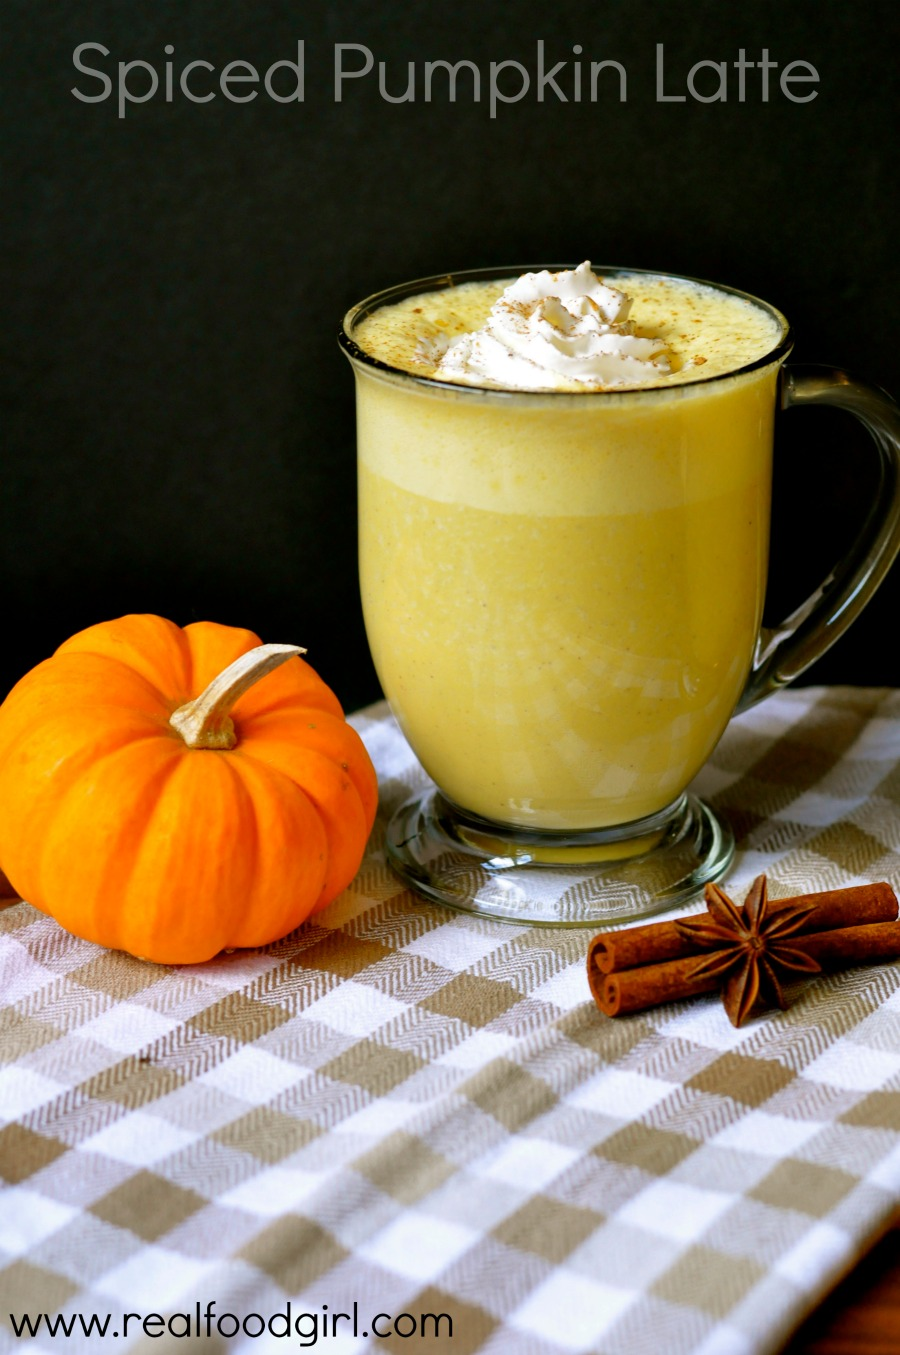 Spiced Pumpkin Latte by Real Food Girl-- Real Food version of the not-so-real-food PSL